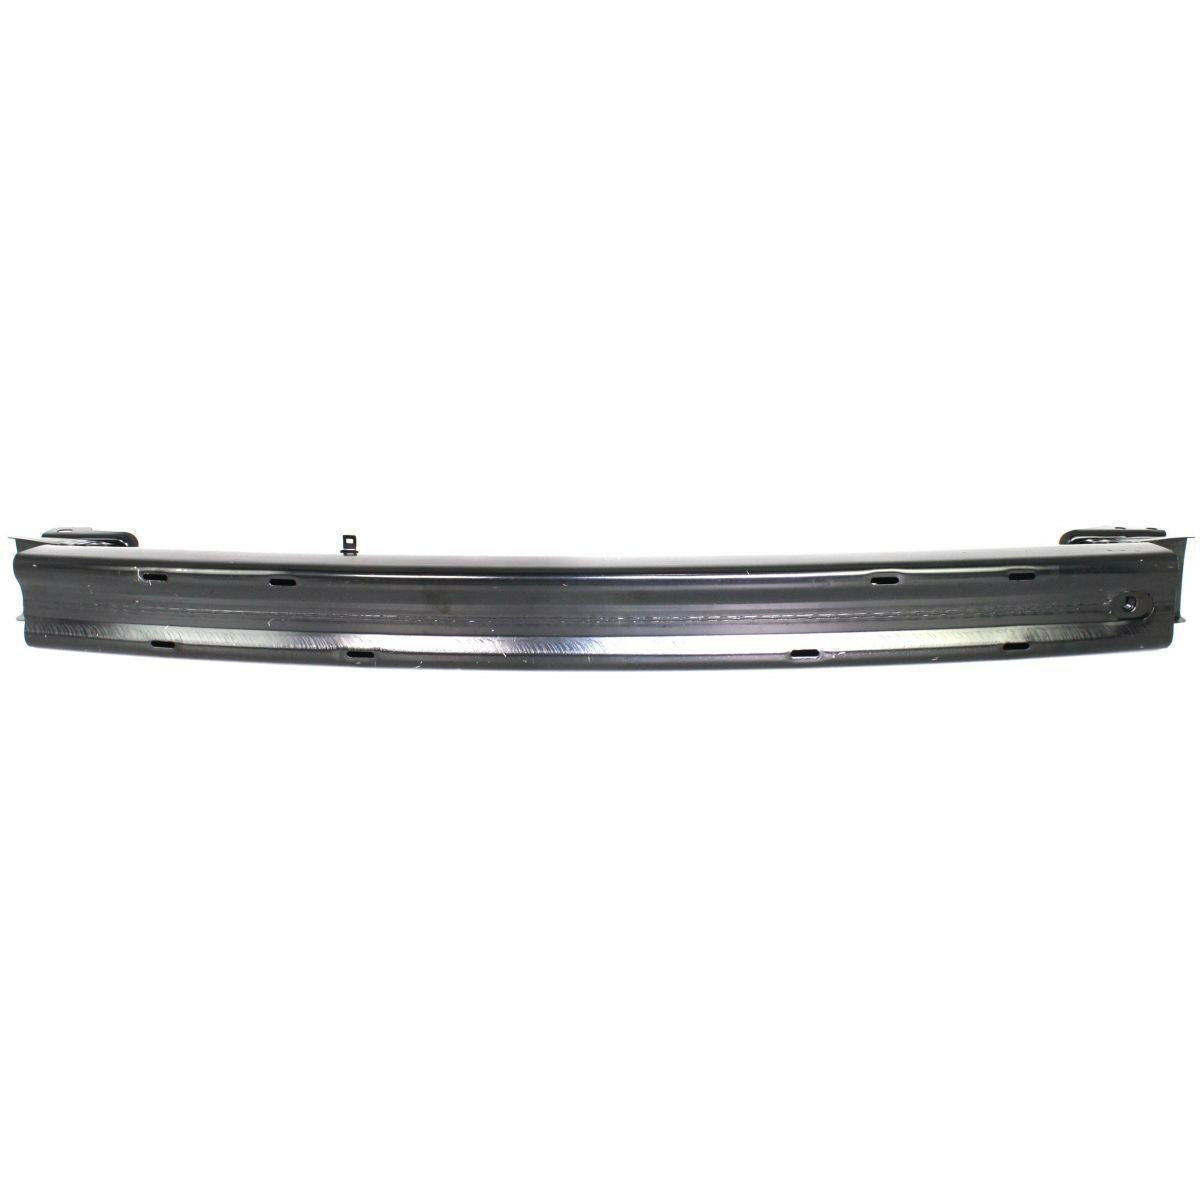 New Front Bumper Reinforcement Manual Transmission Fits 04